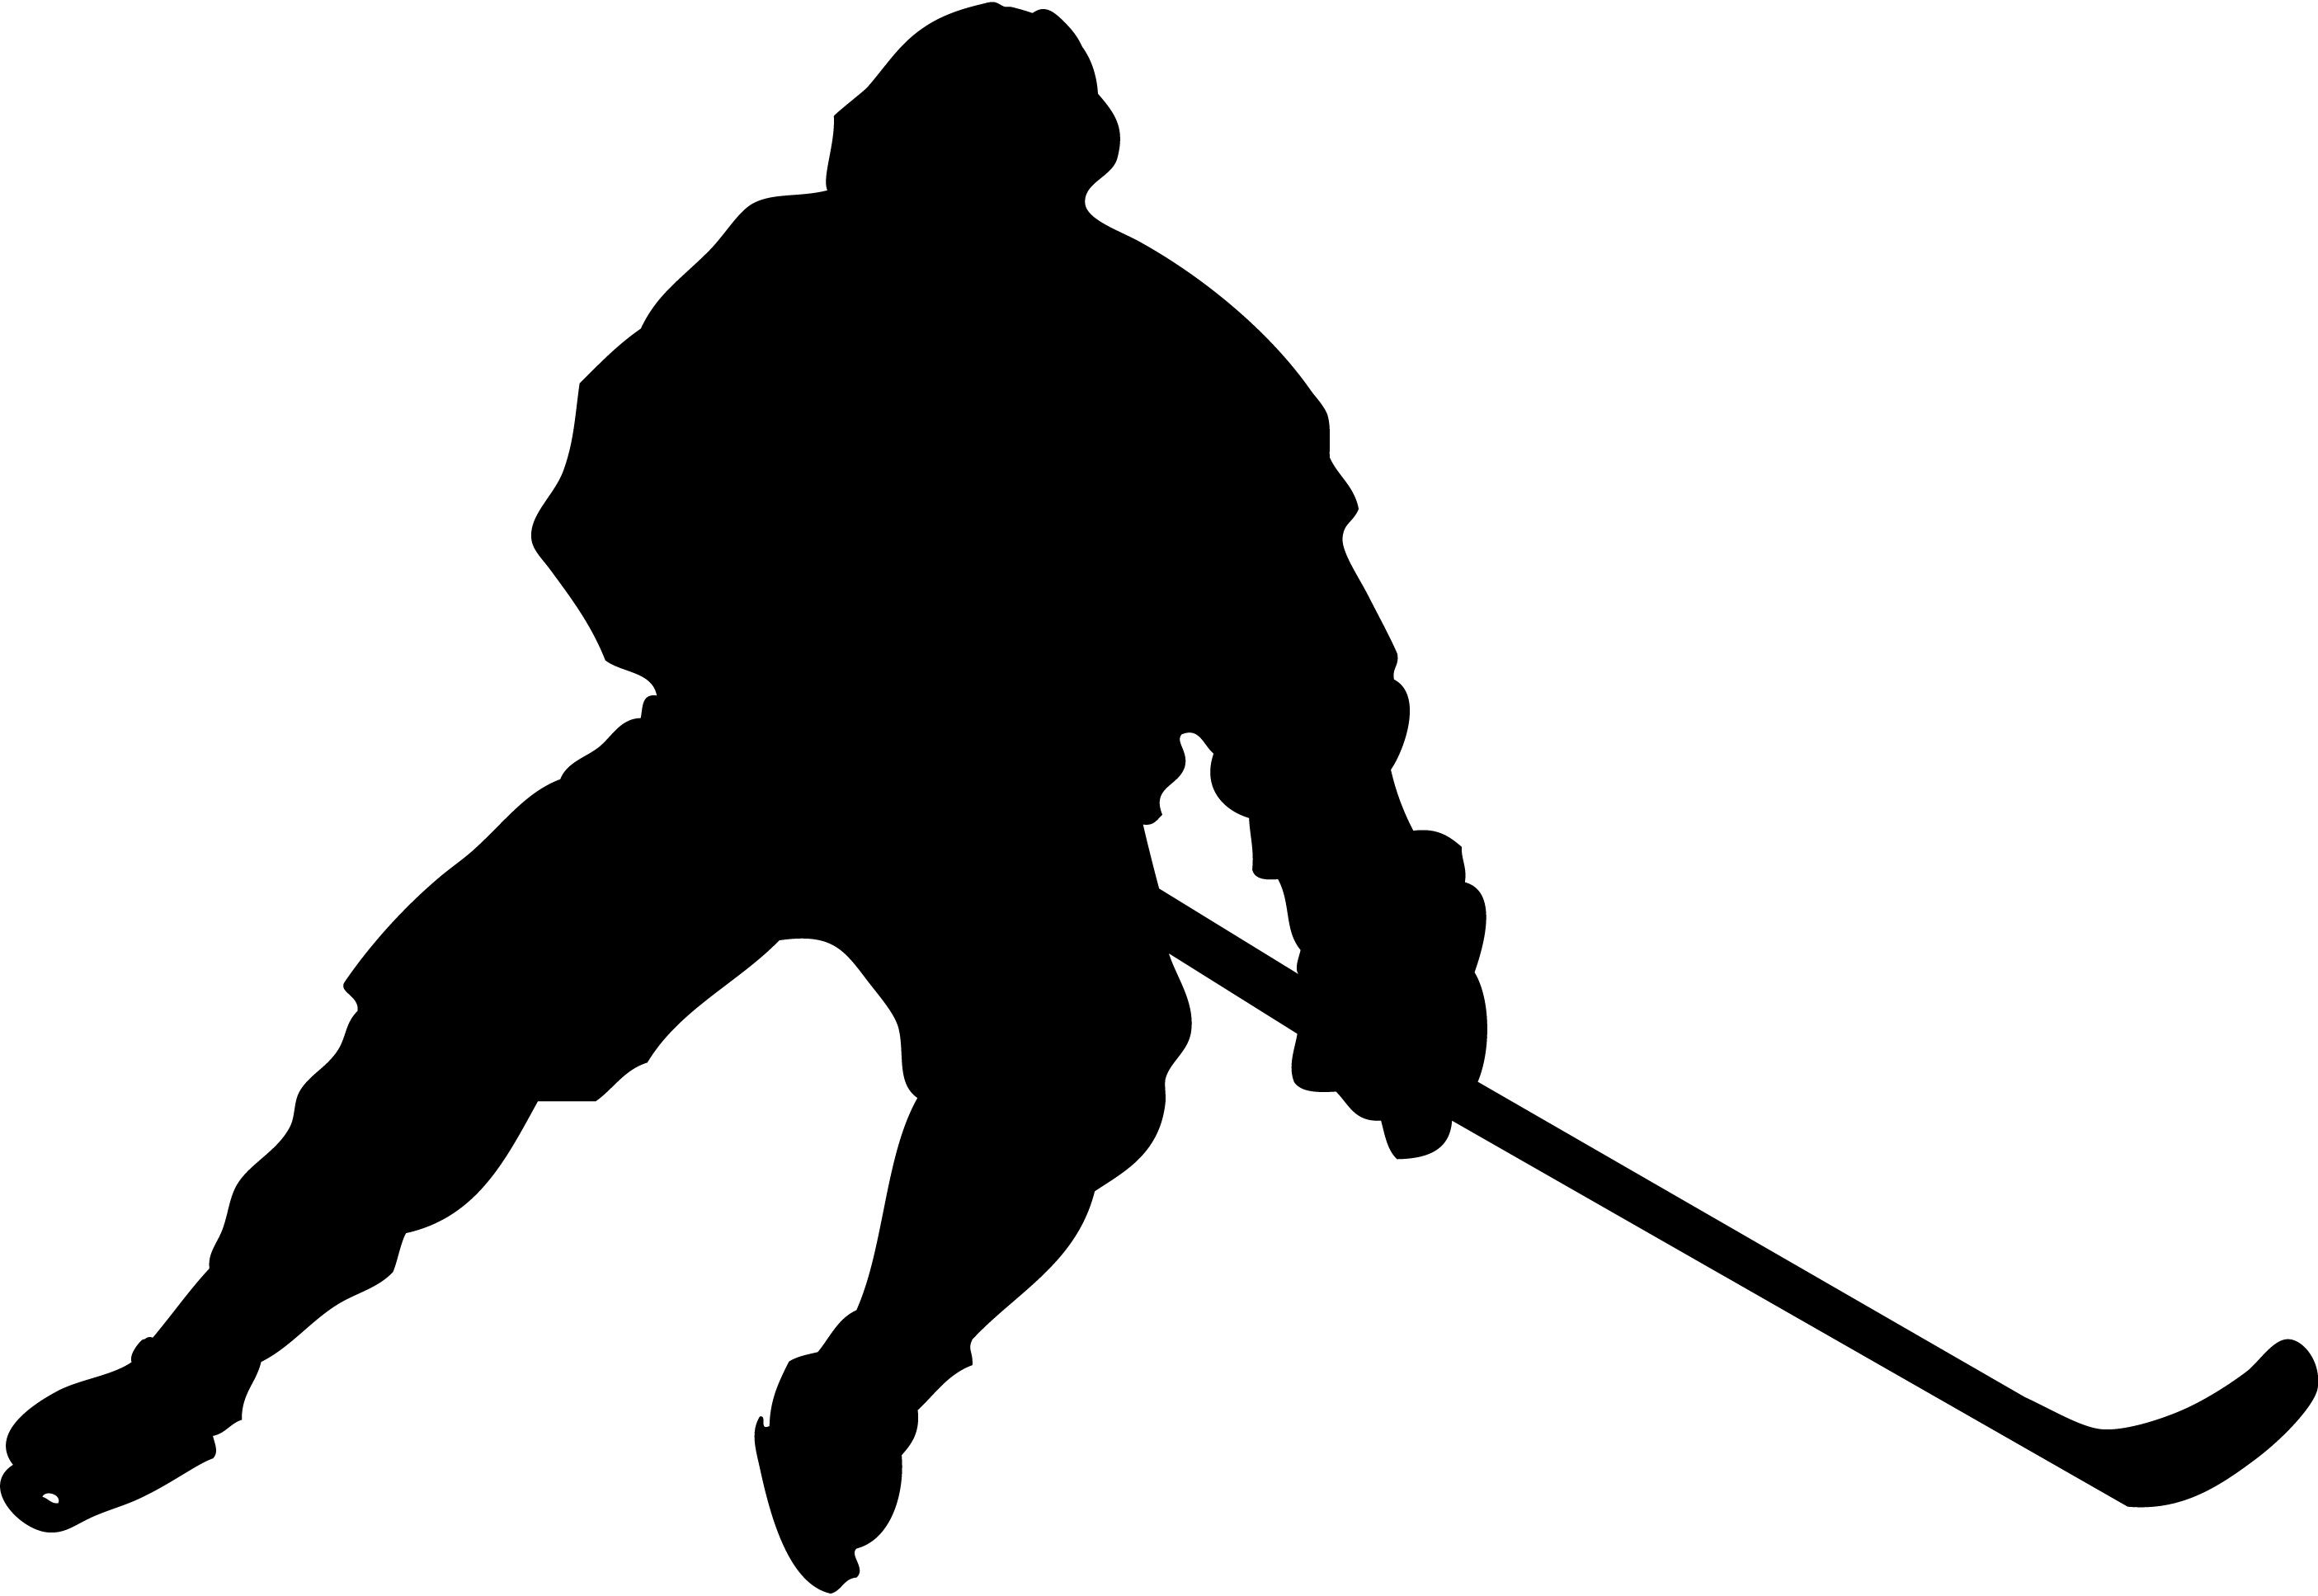 Silhouette Of A Hockey Goalie Making A Glove Save Description From Gettyimages Com I Searched For This On Bing Com Images Hockey Players Hockey Silhouette